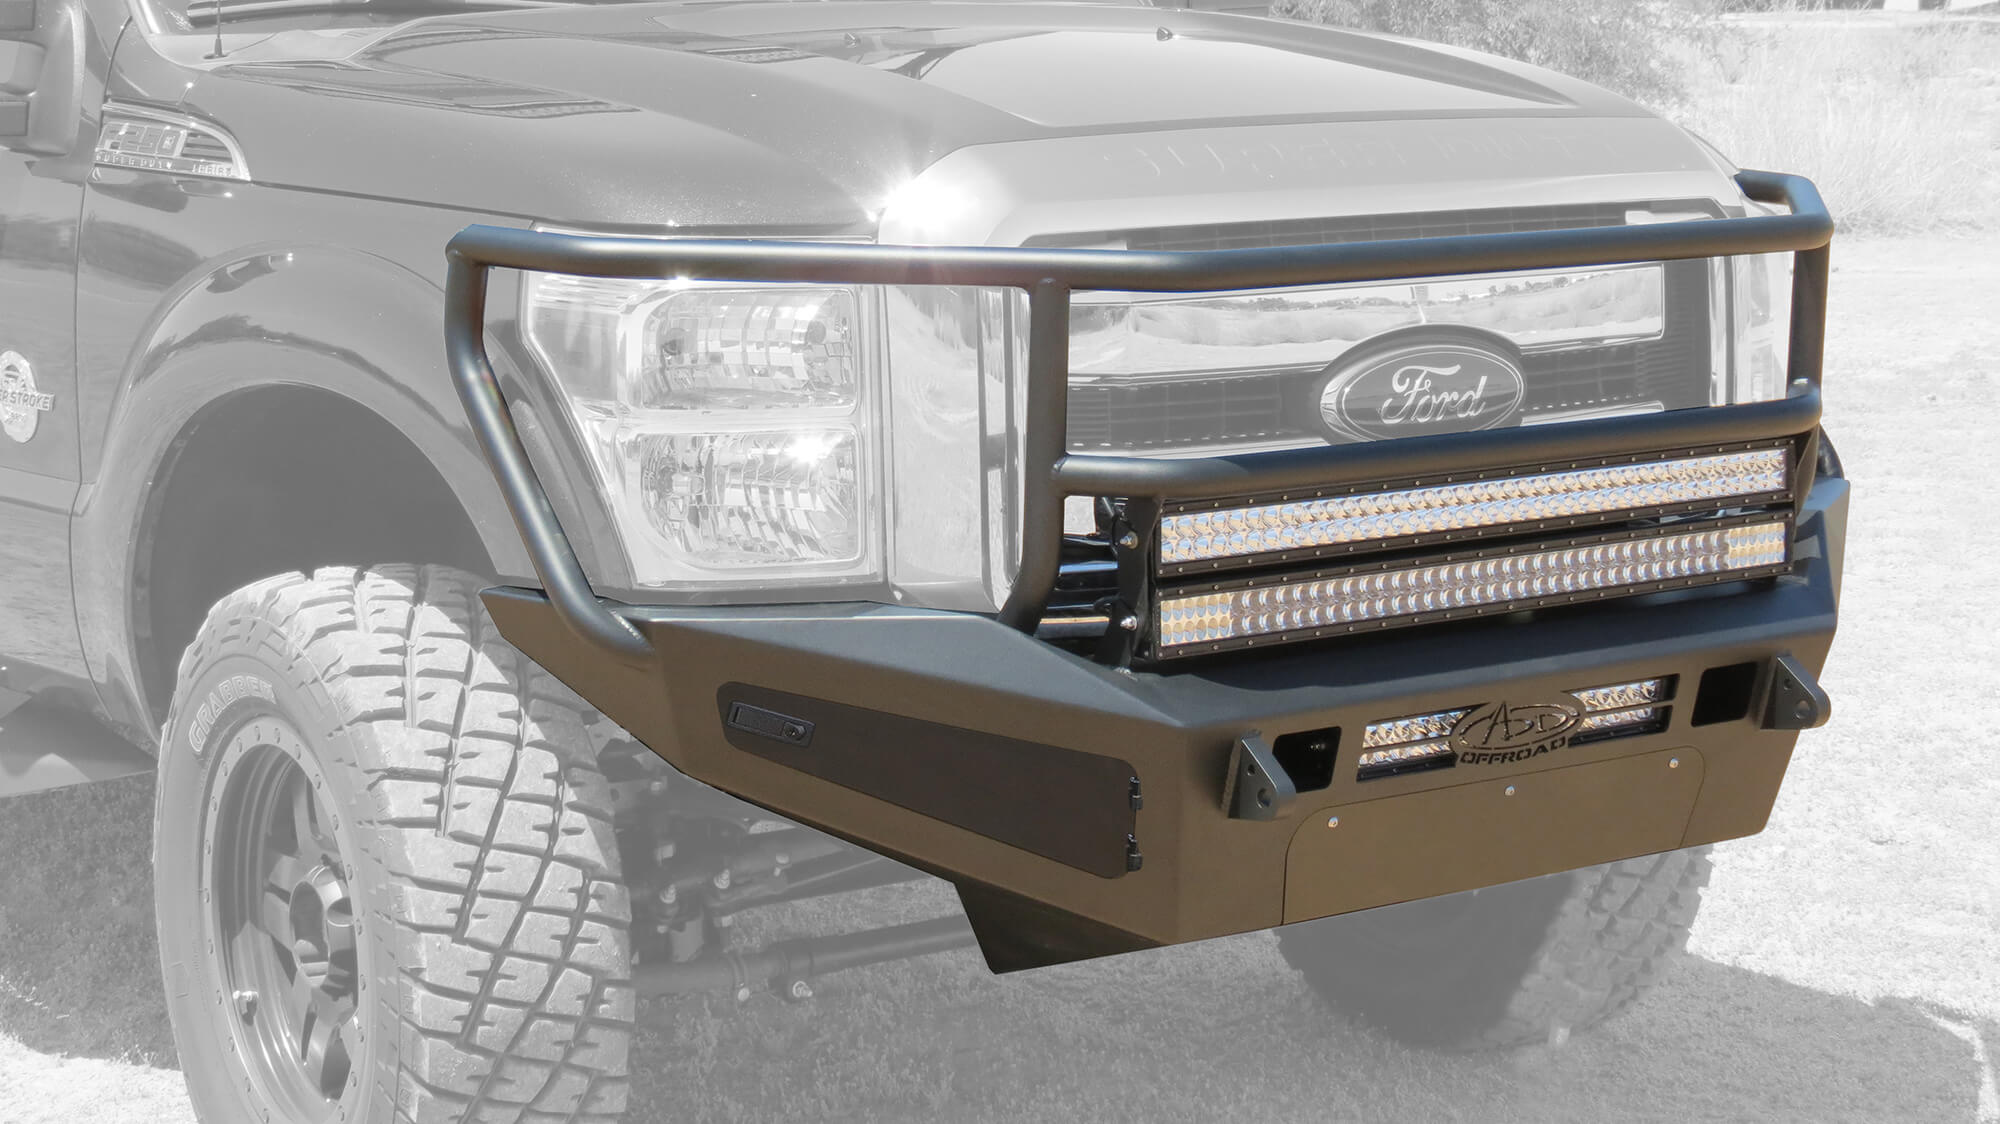 Addictive Desert Designs F-250/F-350 HoneyBadger Rancher Front Bumper With Storage Boxes (2011-2016)